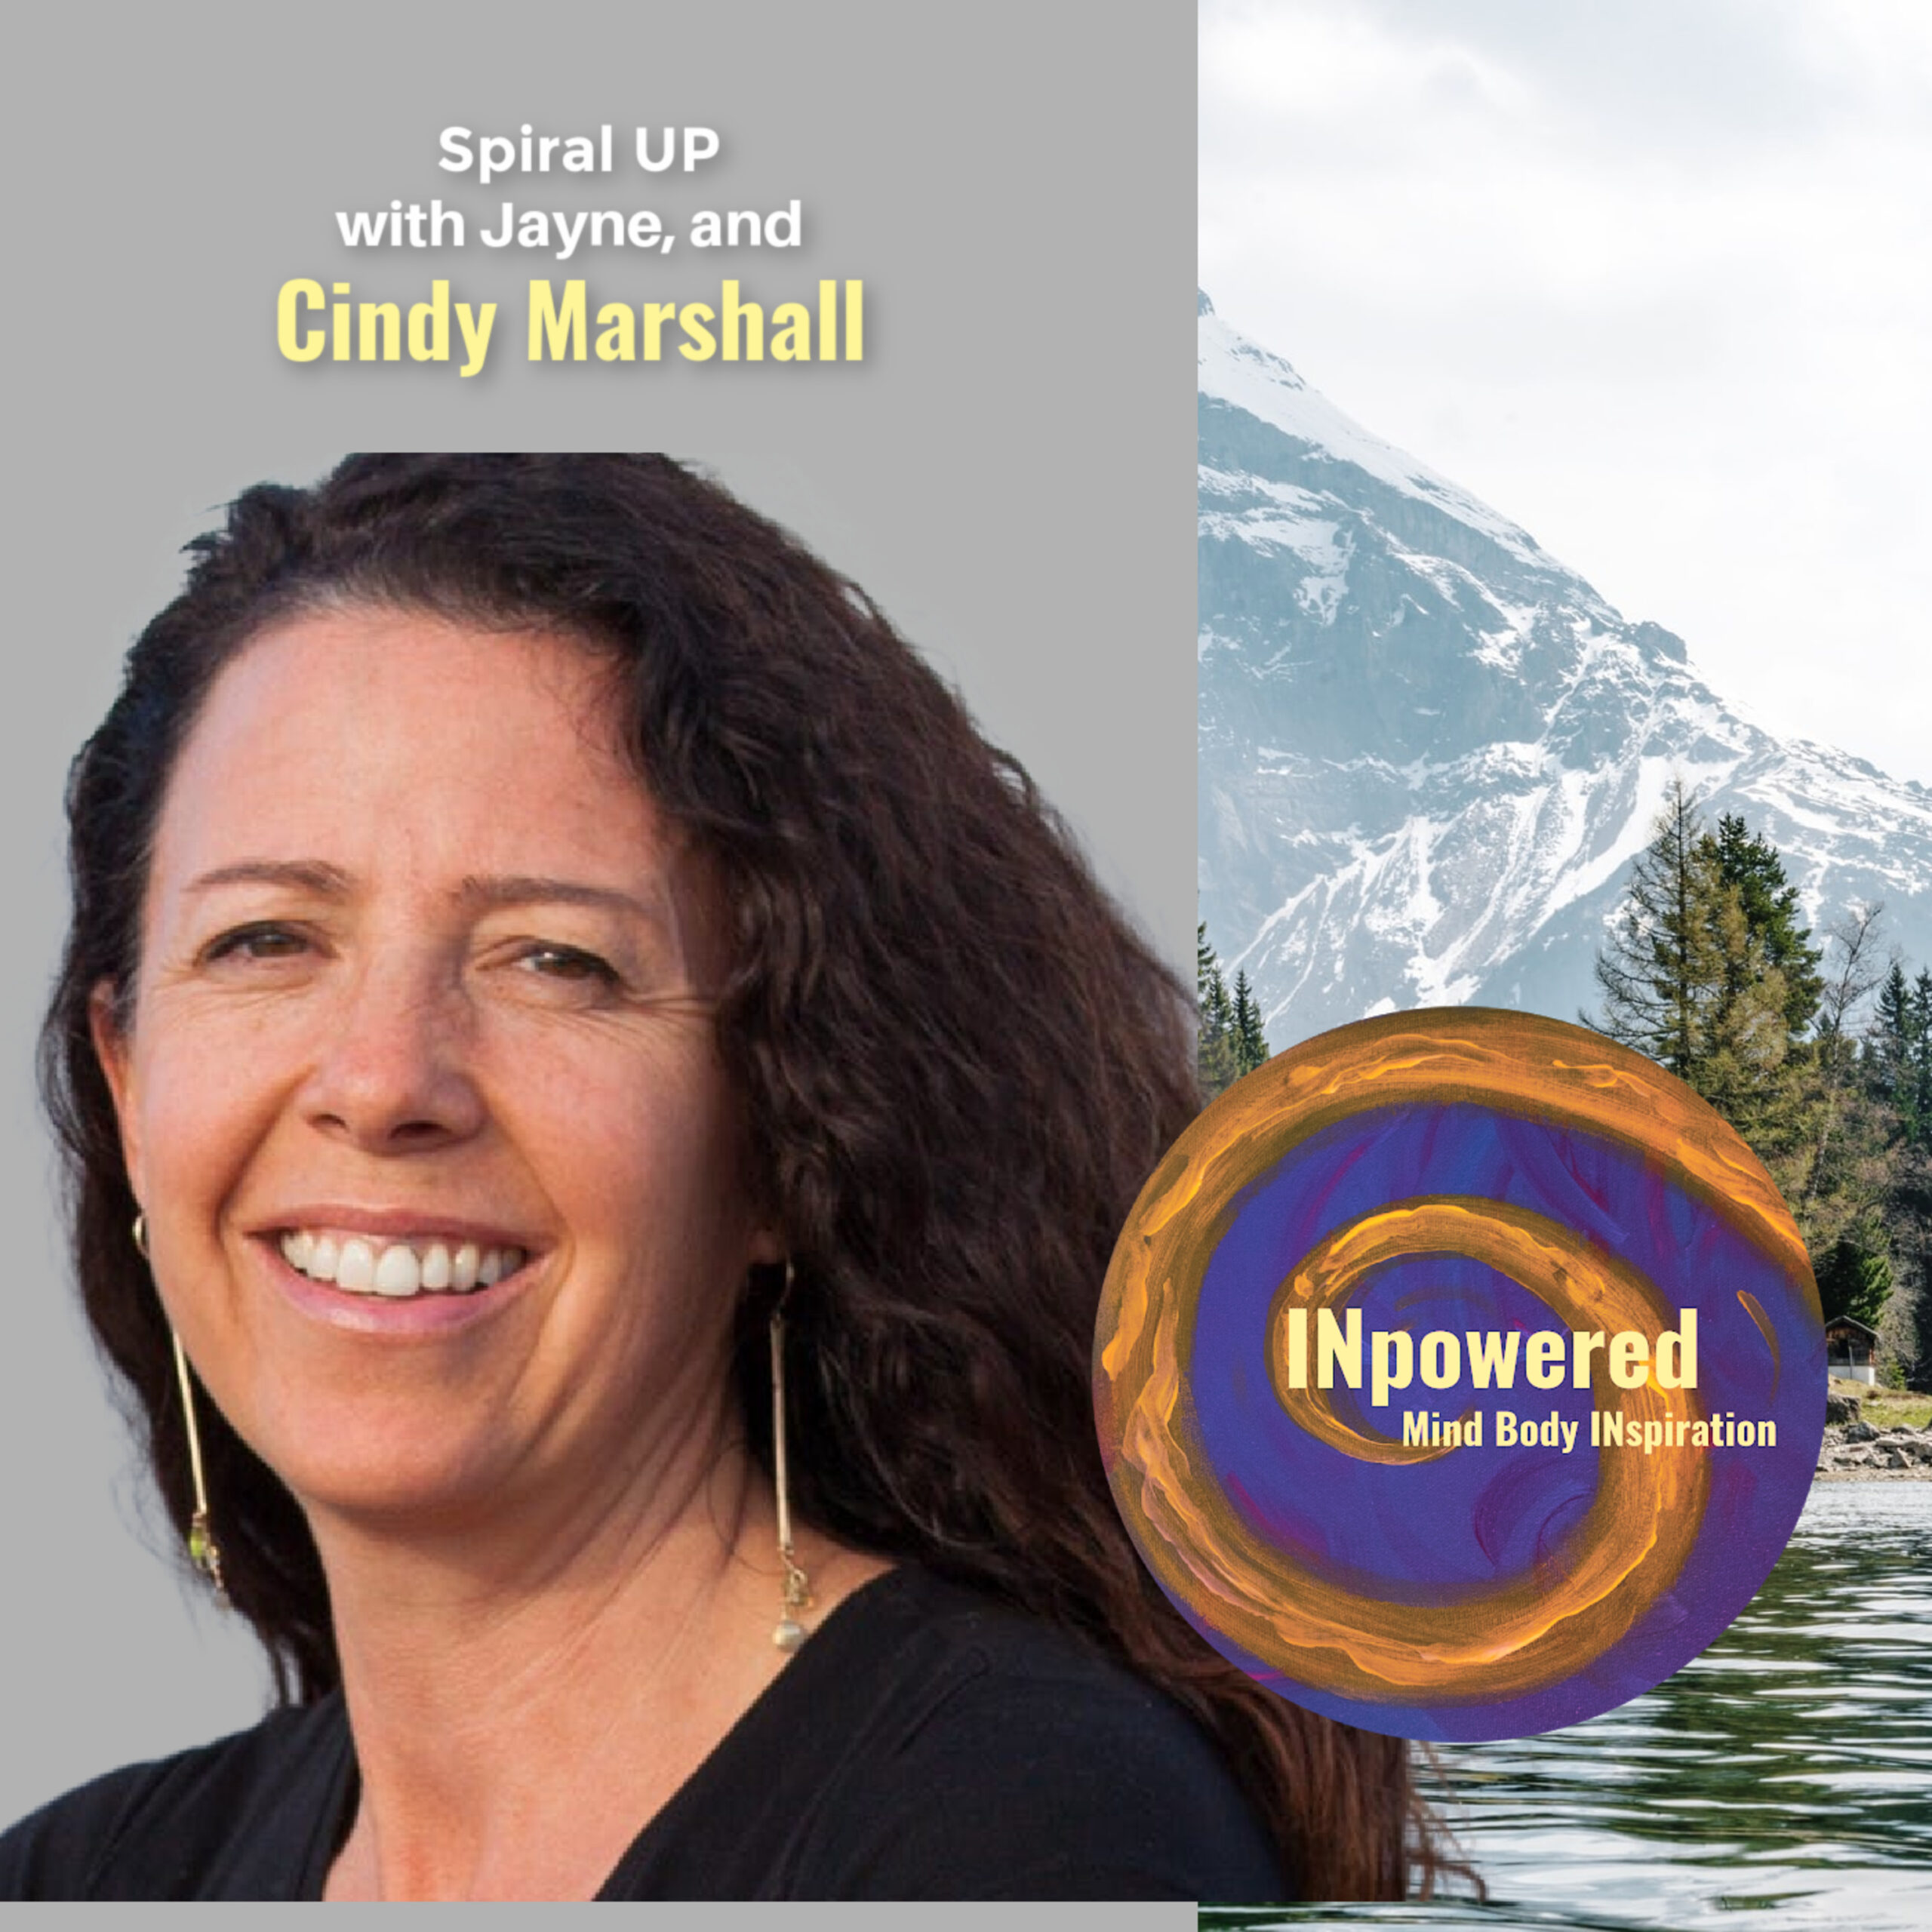 Cindy Marshall – Cracking the code, on true healing, from the INSIDE out.